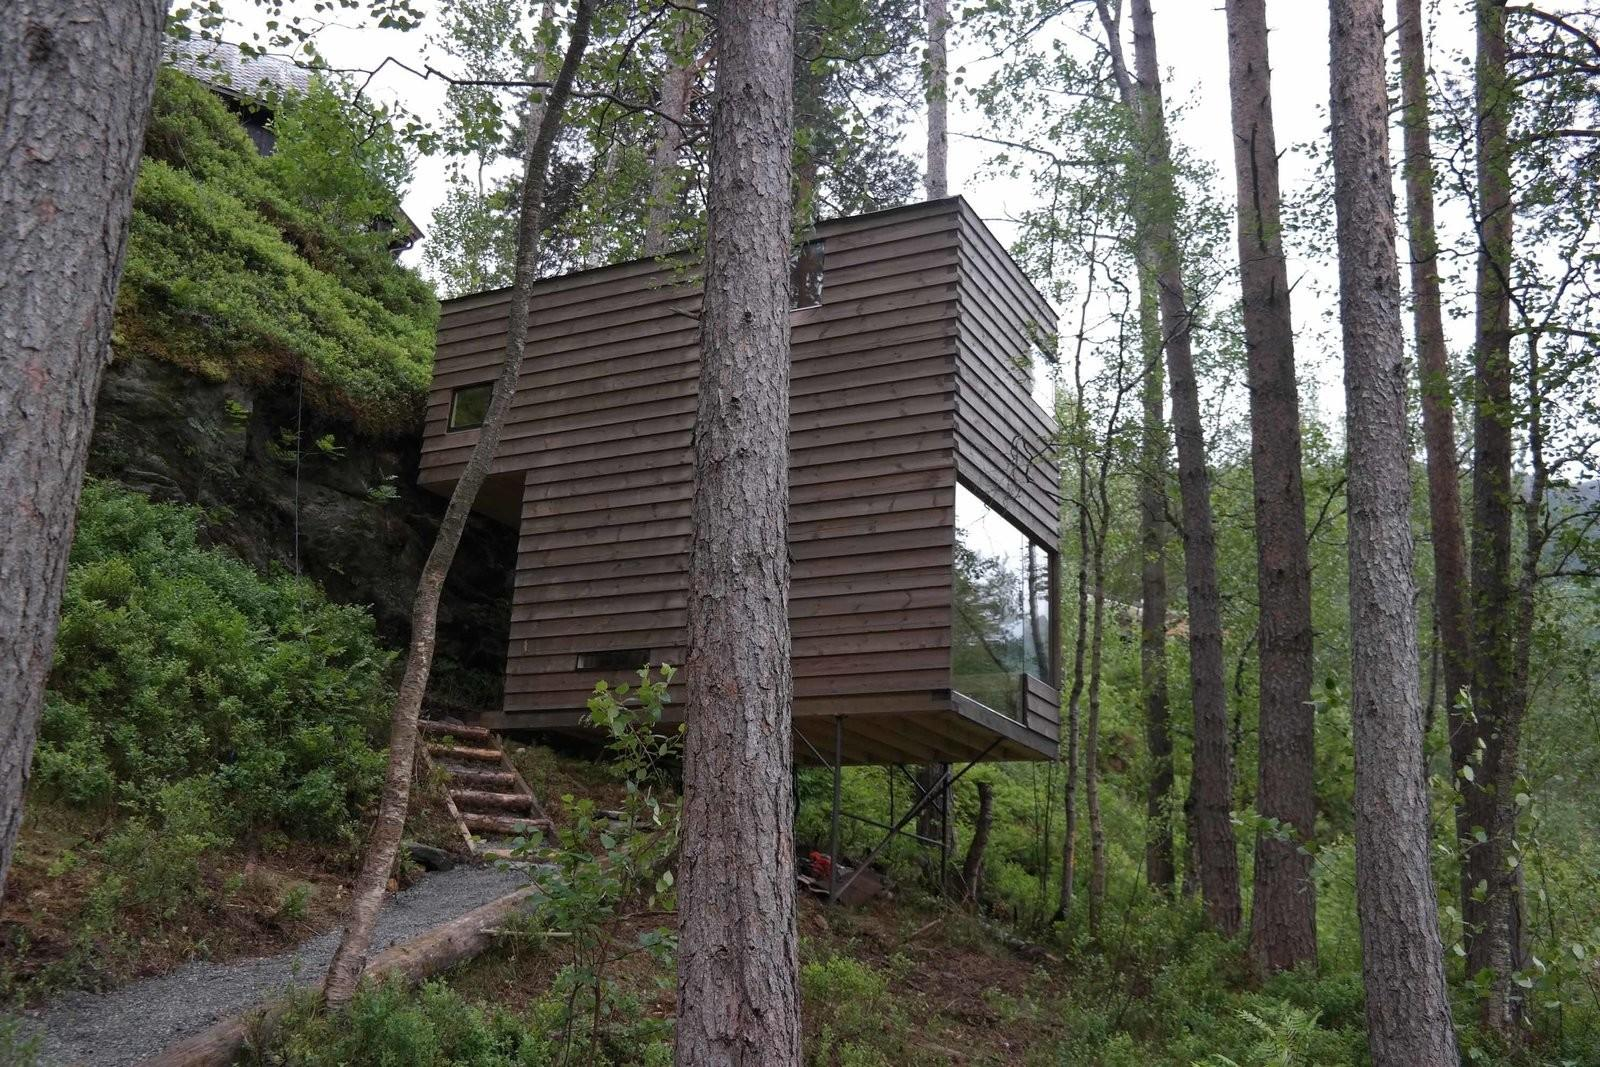 Dwell Rustic Cabins Comprise Impossibly Idyllic